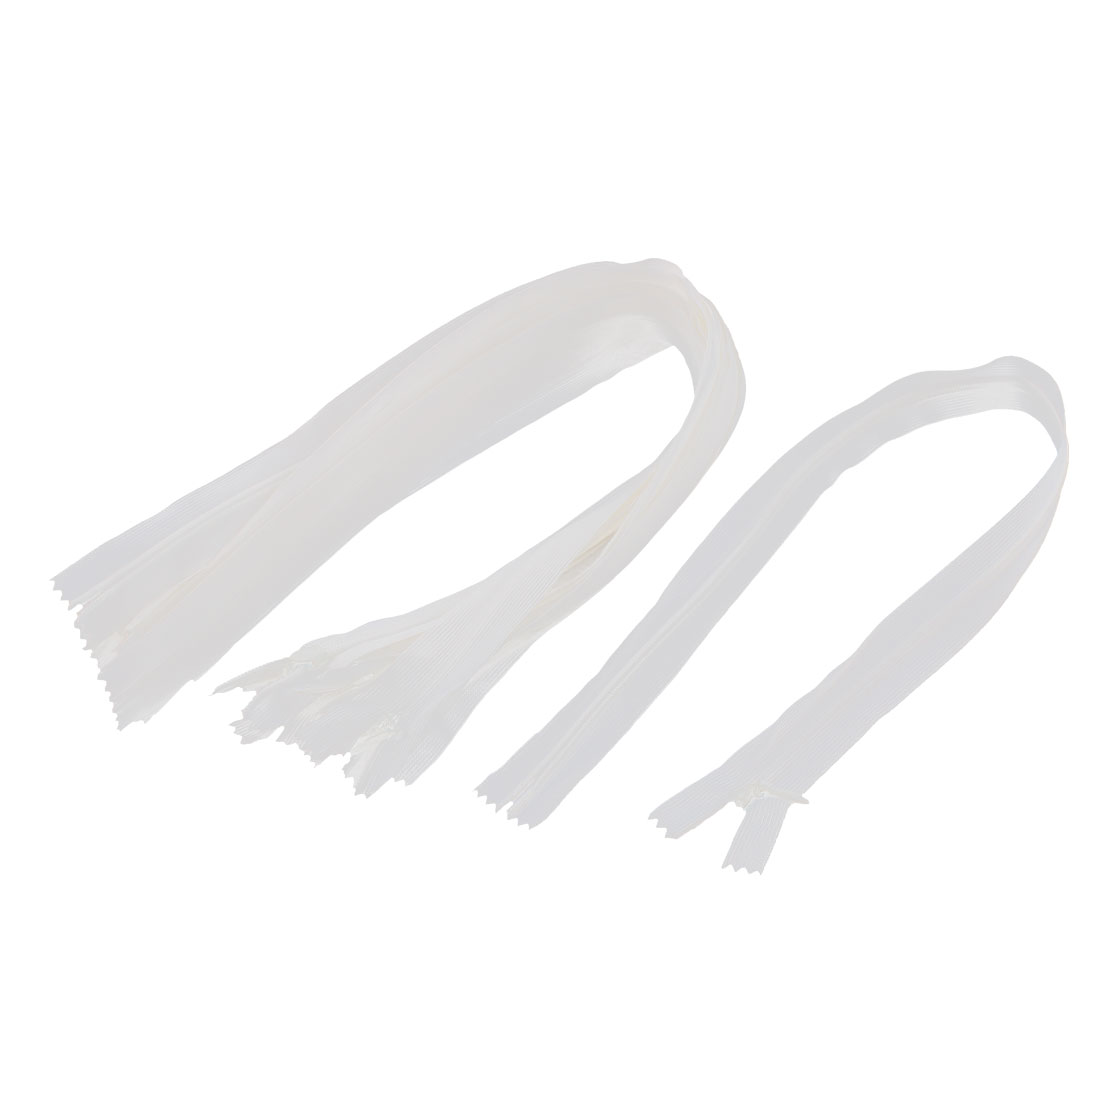 Dress Pants Closed End Nylon Zippers Tailor Sewing Craft Tool White 50cm 10 Pcs